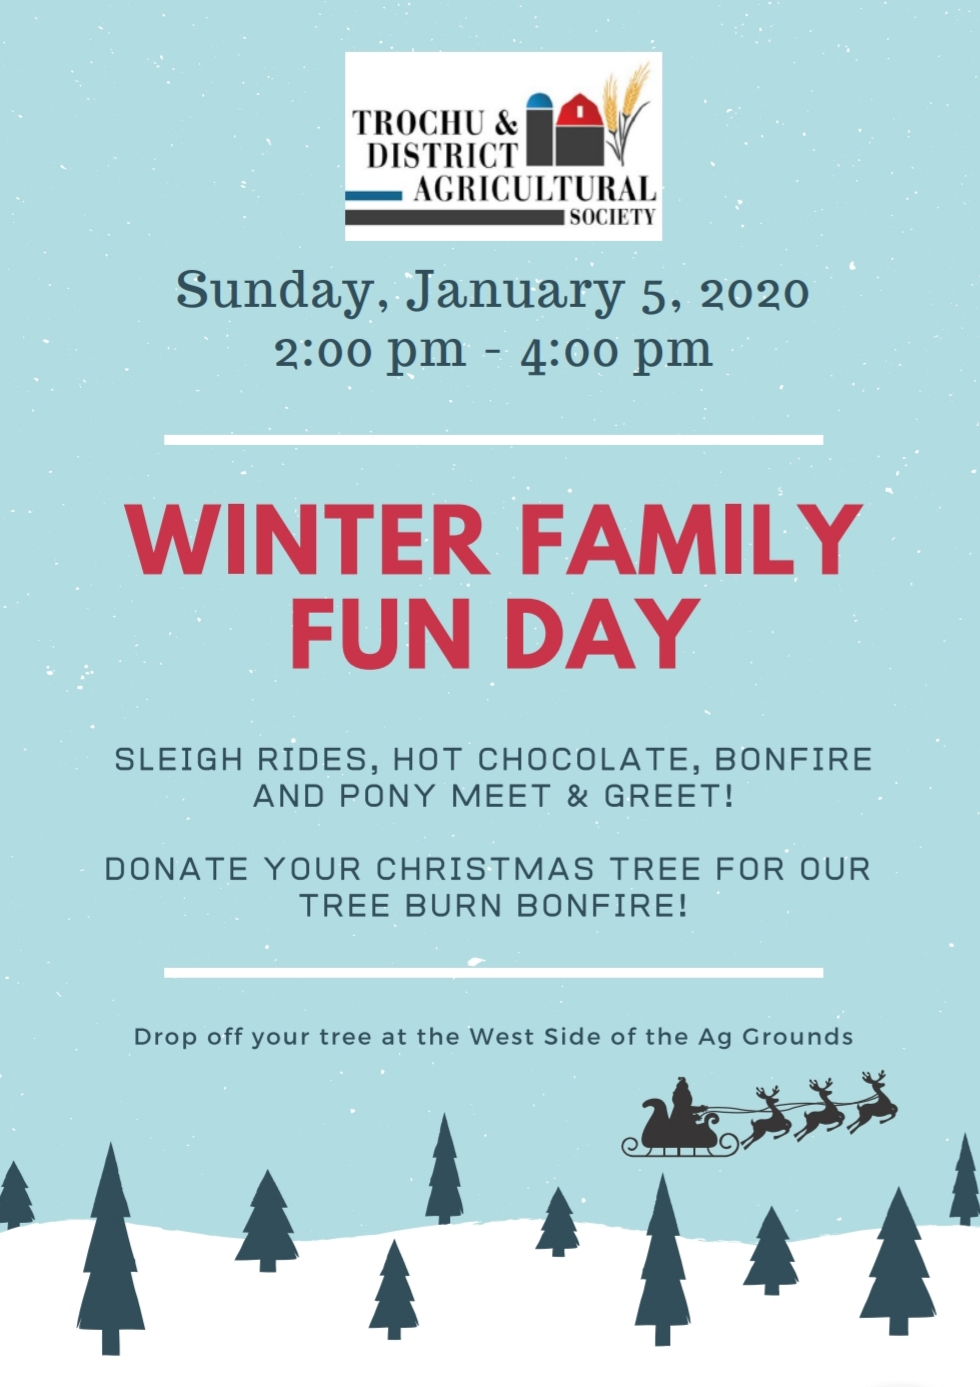 Winter Family Fun Day @ Trochu Ag Grounds